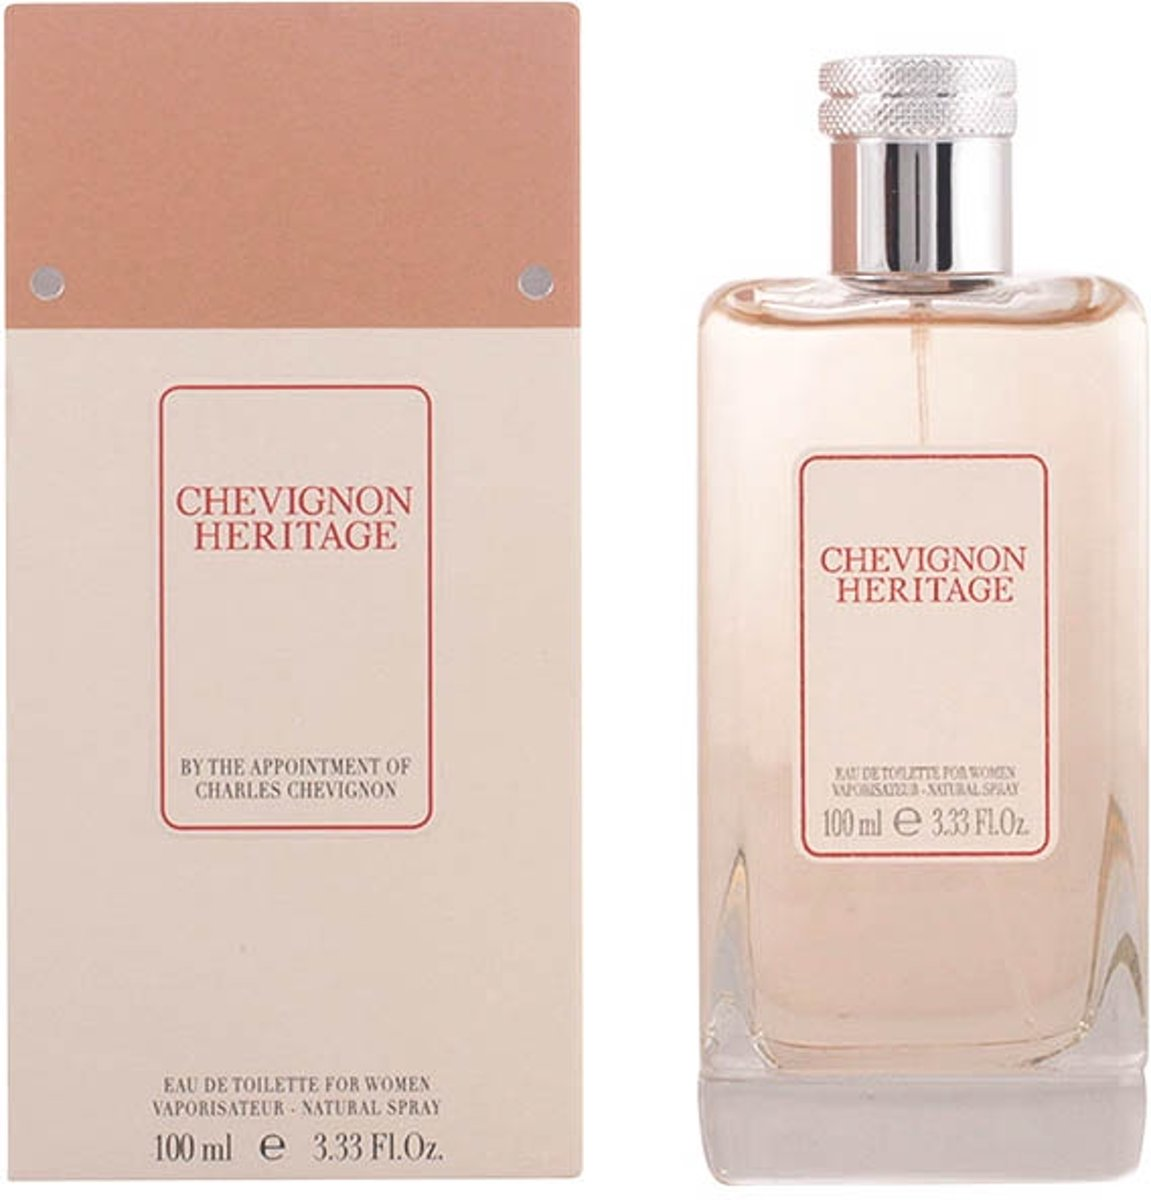 CHEVIGNON HERITAGE FOR WOMEN eau de toilette spray 100 ml